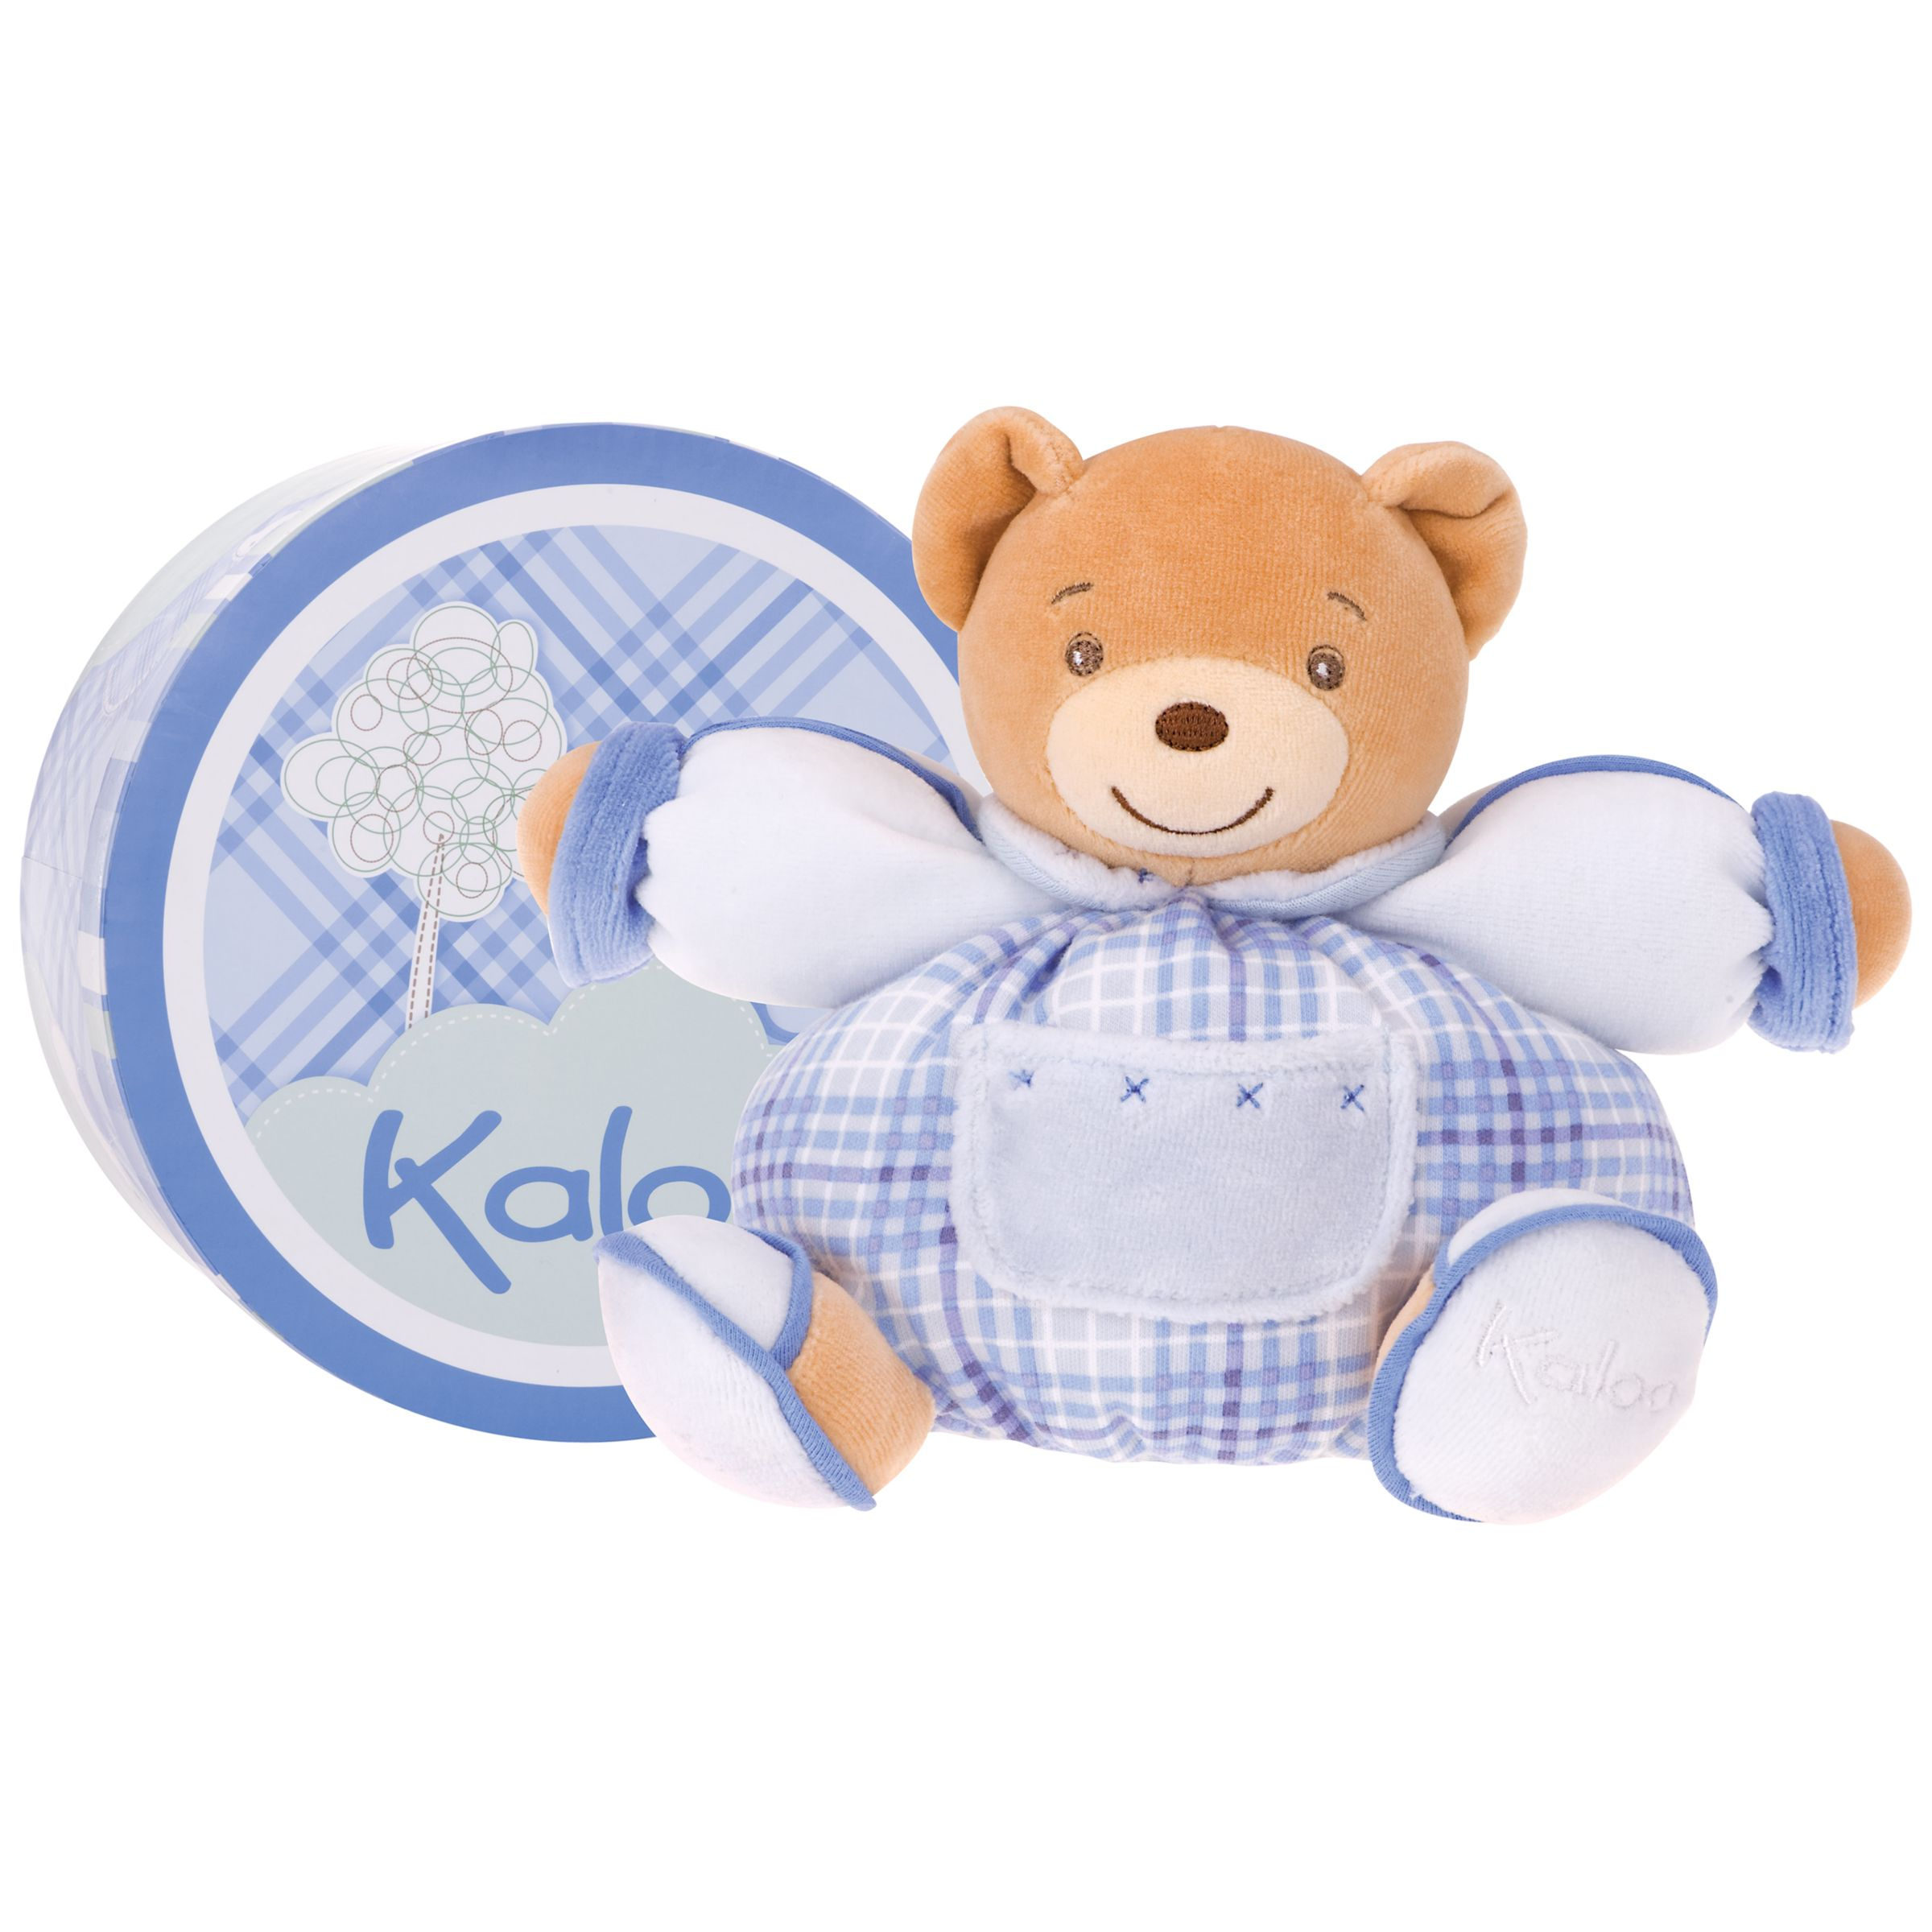 Kaloo Small Chubby Bear, Blue